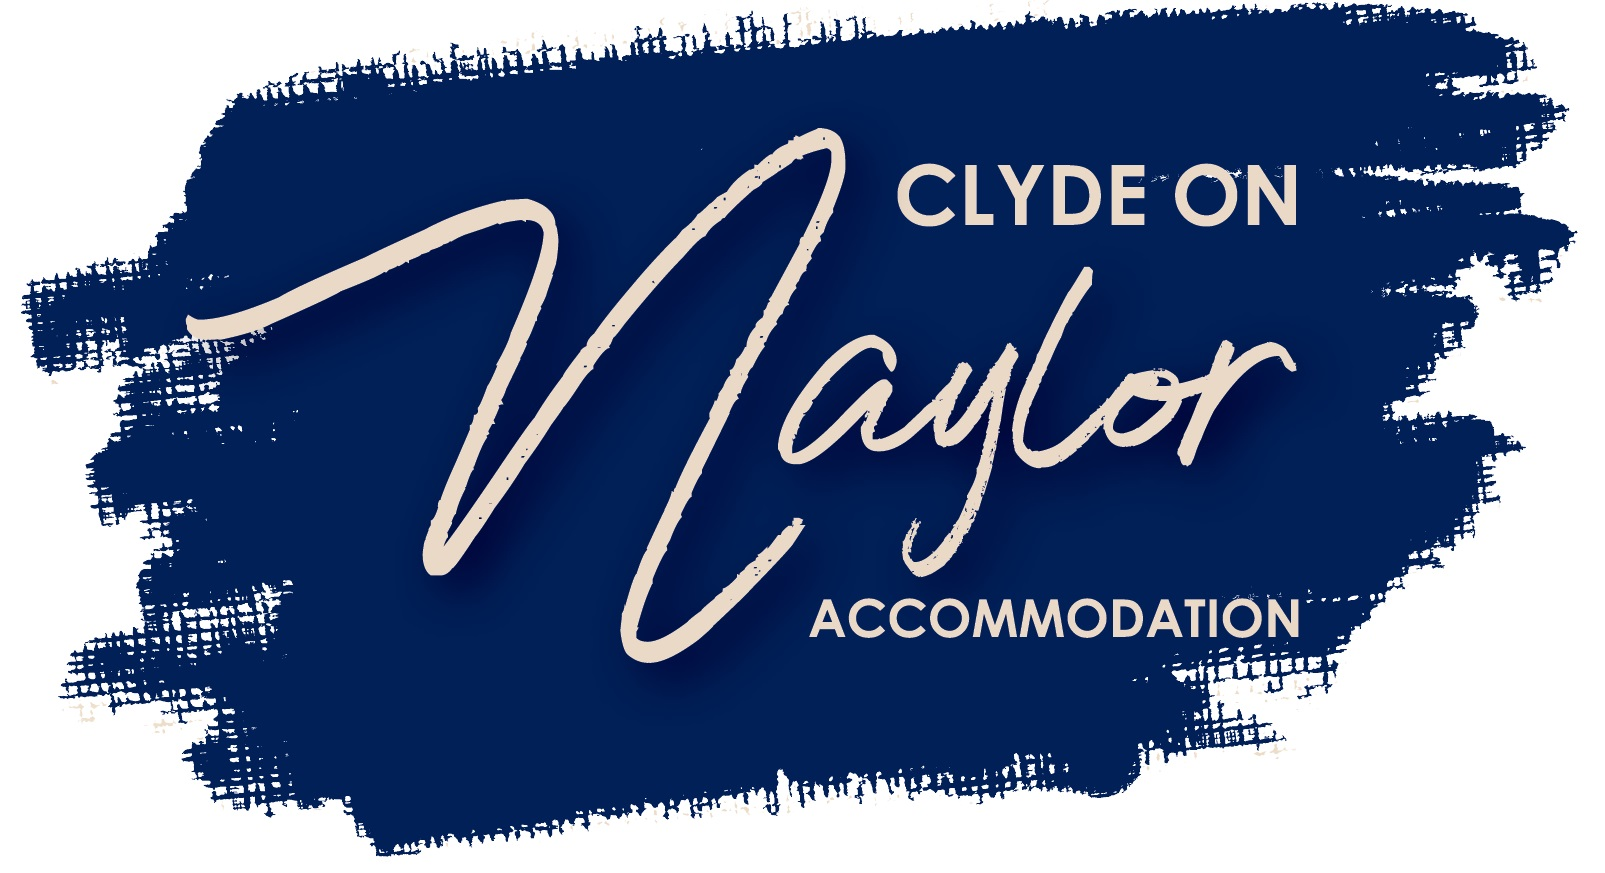 Clyde on Naylor